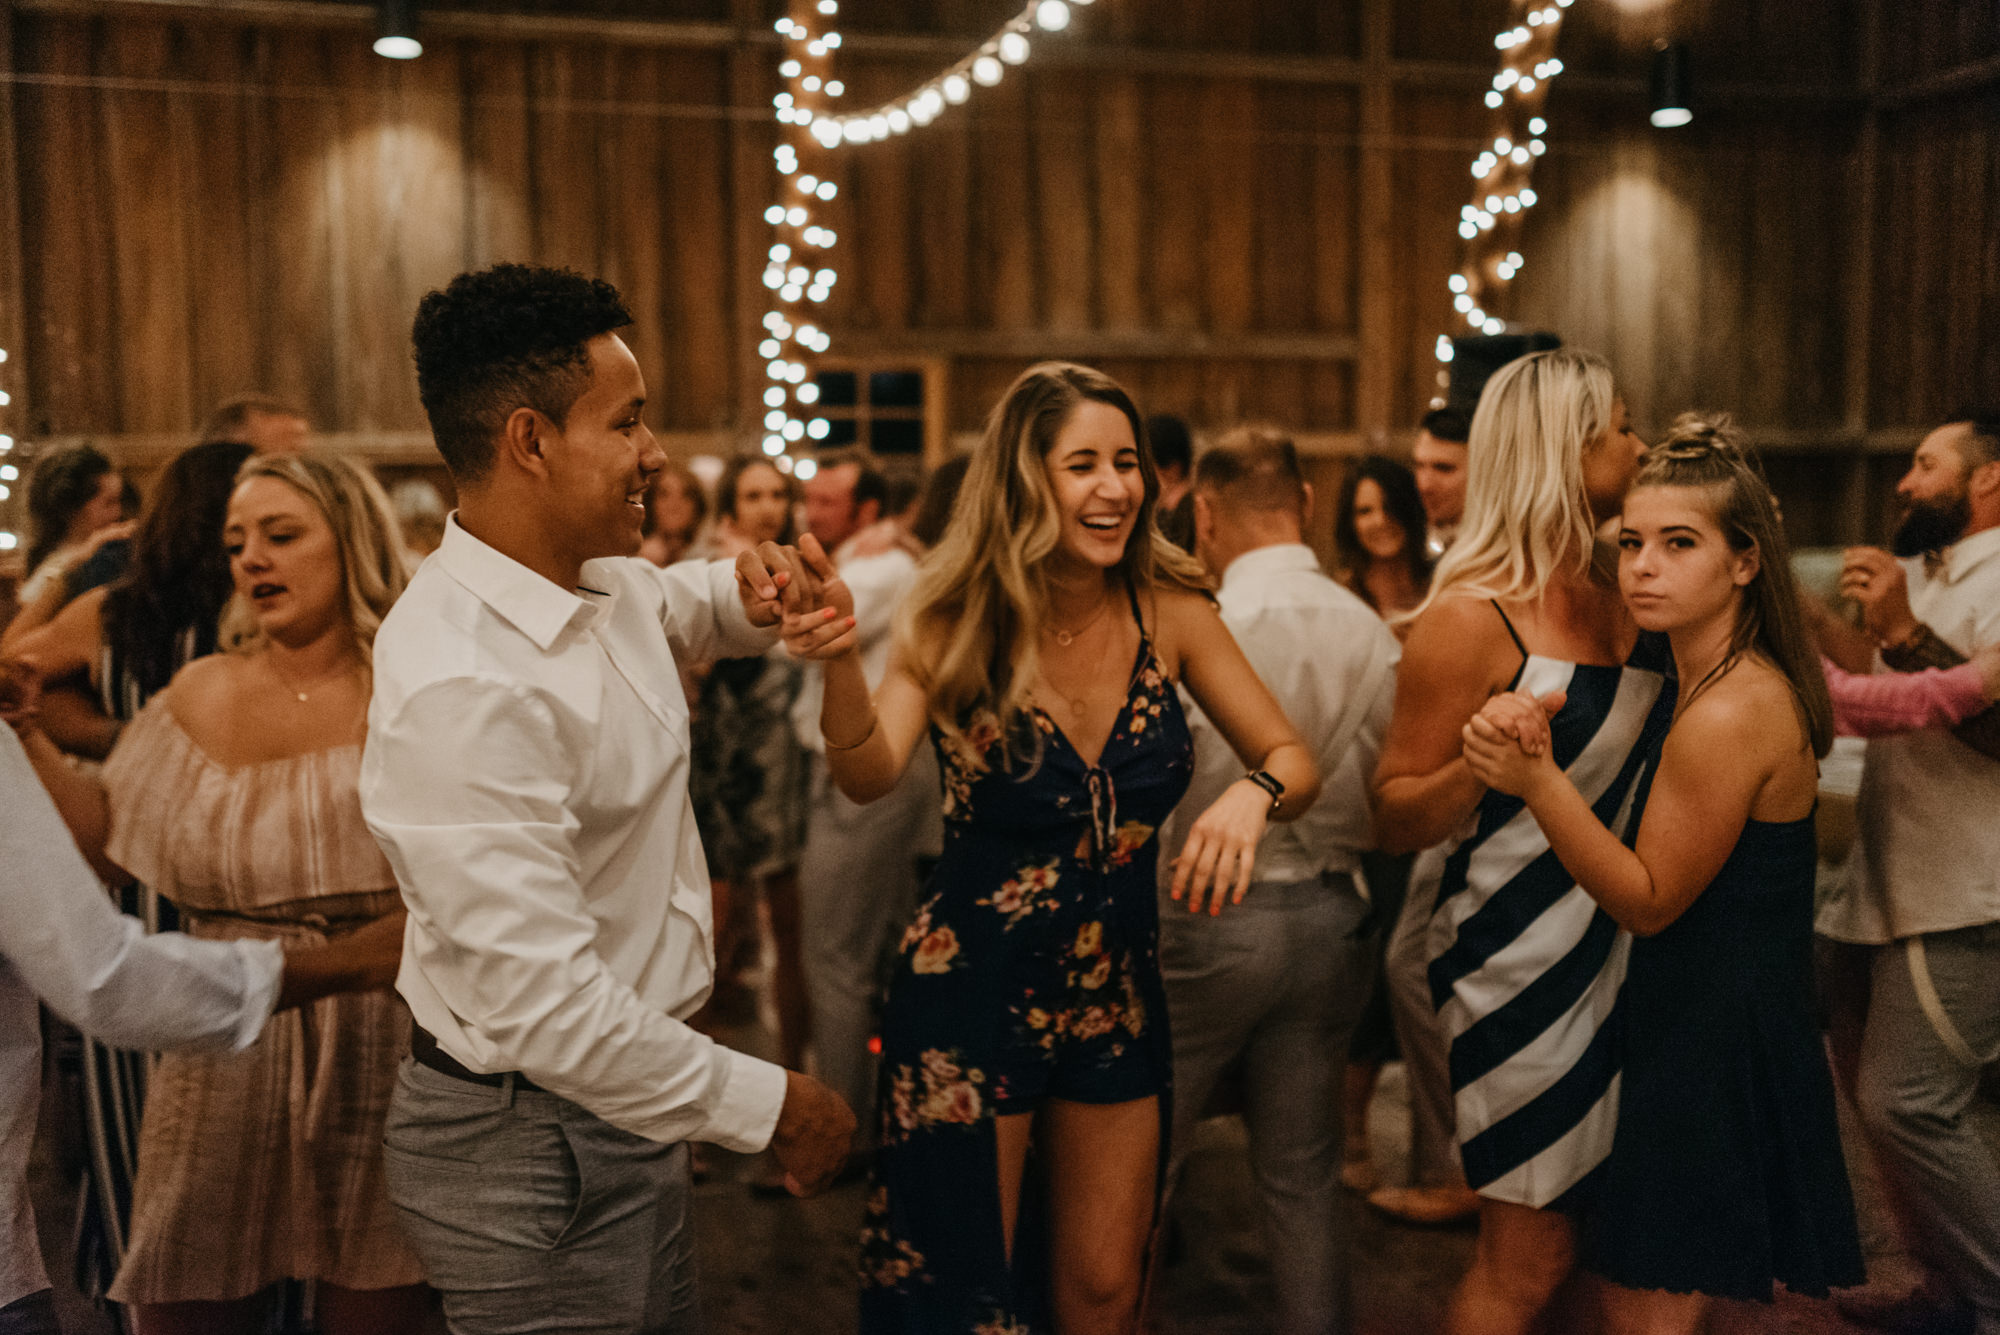 218-portland-northwest-wedding-bubble-exit-barn-string-lights.jpg